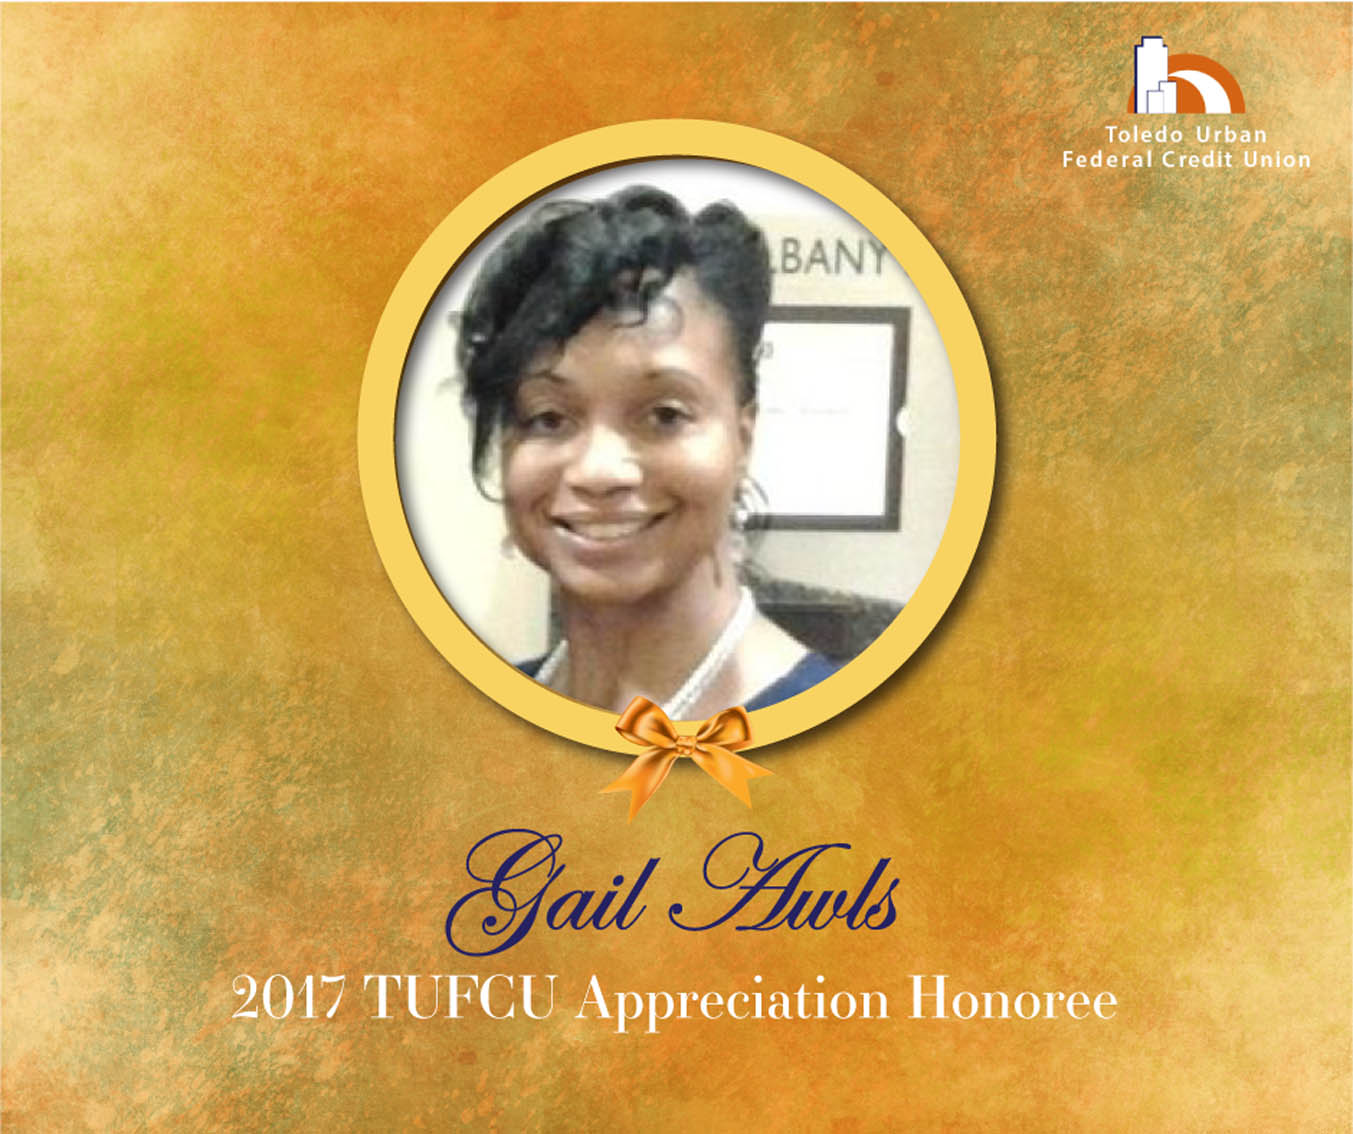 Image of Gail Awles, 2017 T.U.F.C.U. Appreciation Honoree.